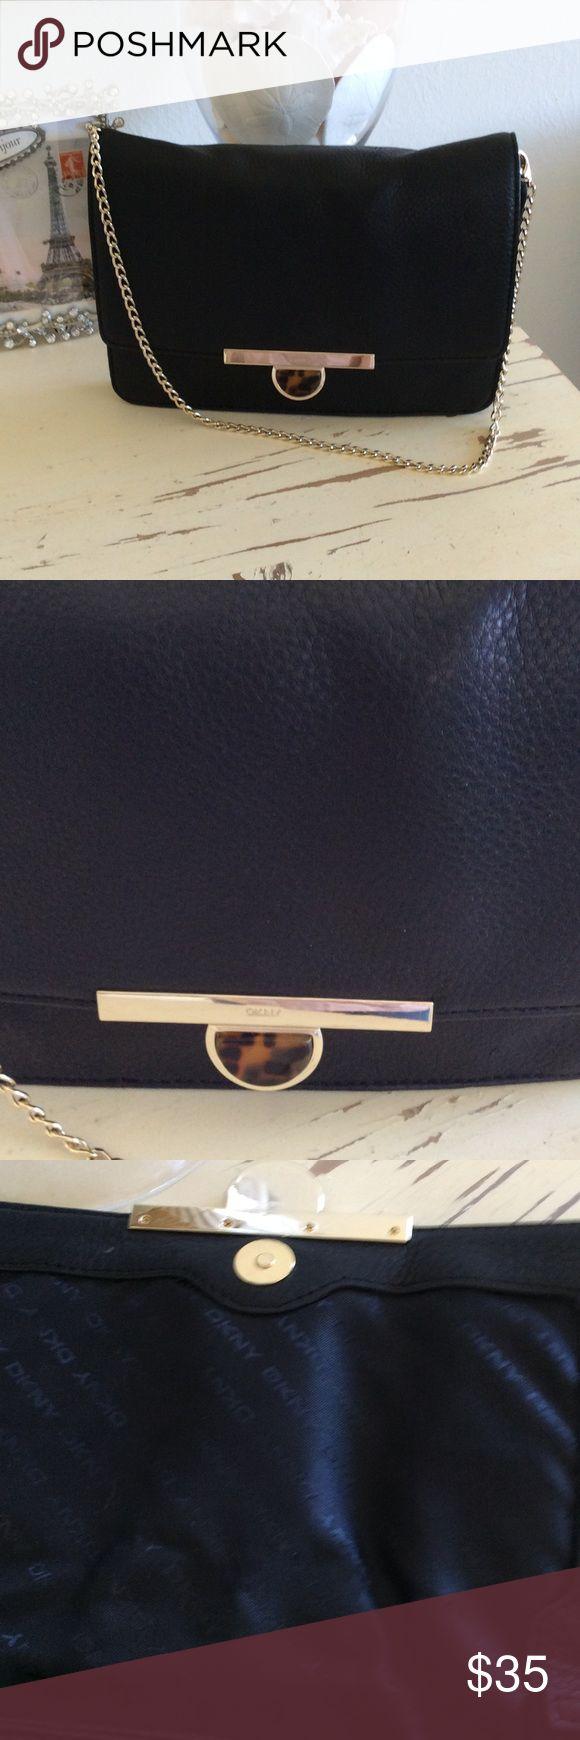 Selling this DKNY leather clutch on Poshmark! My username is: heatherg2017. #shopmycloset #poshmark #fashion #shopping #style #forsale #DKNY #Handbags